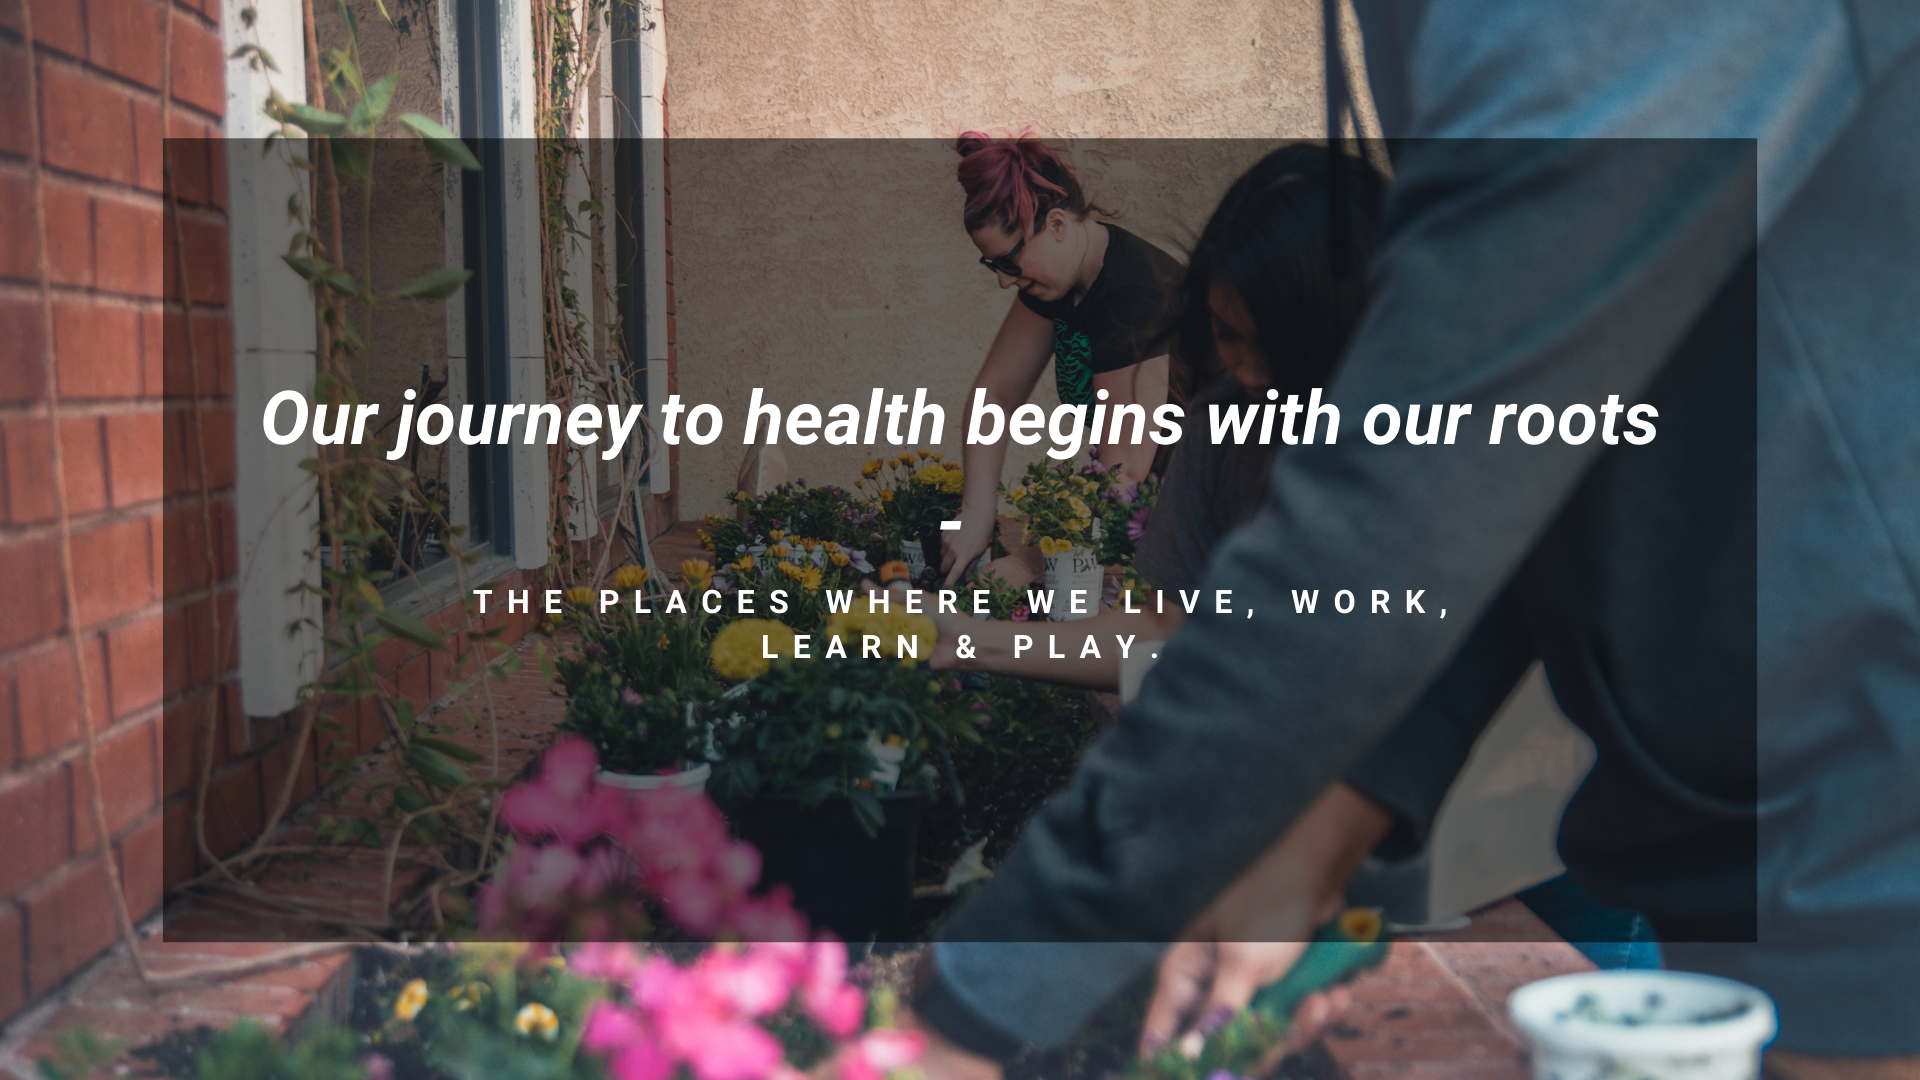 Our journey with health begins with our roots - the places where with live, work, learn and play.